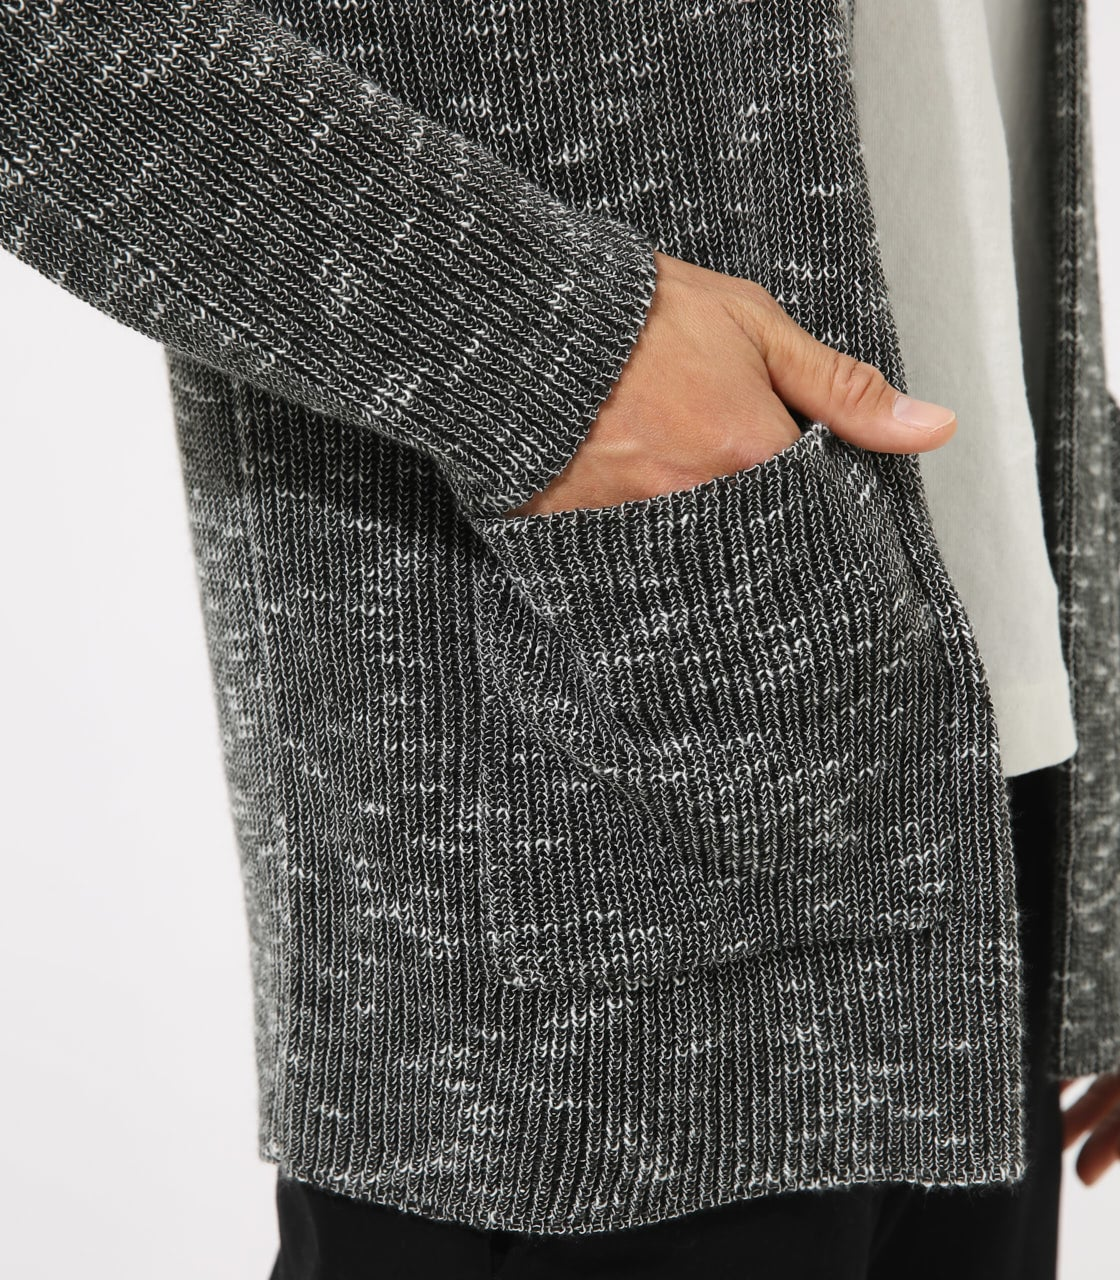 【AZUL BY MOUSSY】RIB STITCH CARDIGAN 詳細画像 柄BLK 9